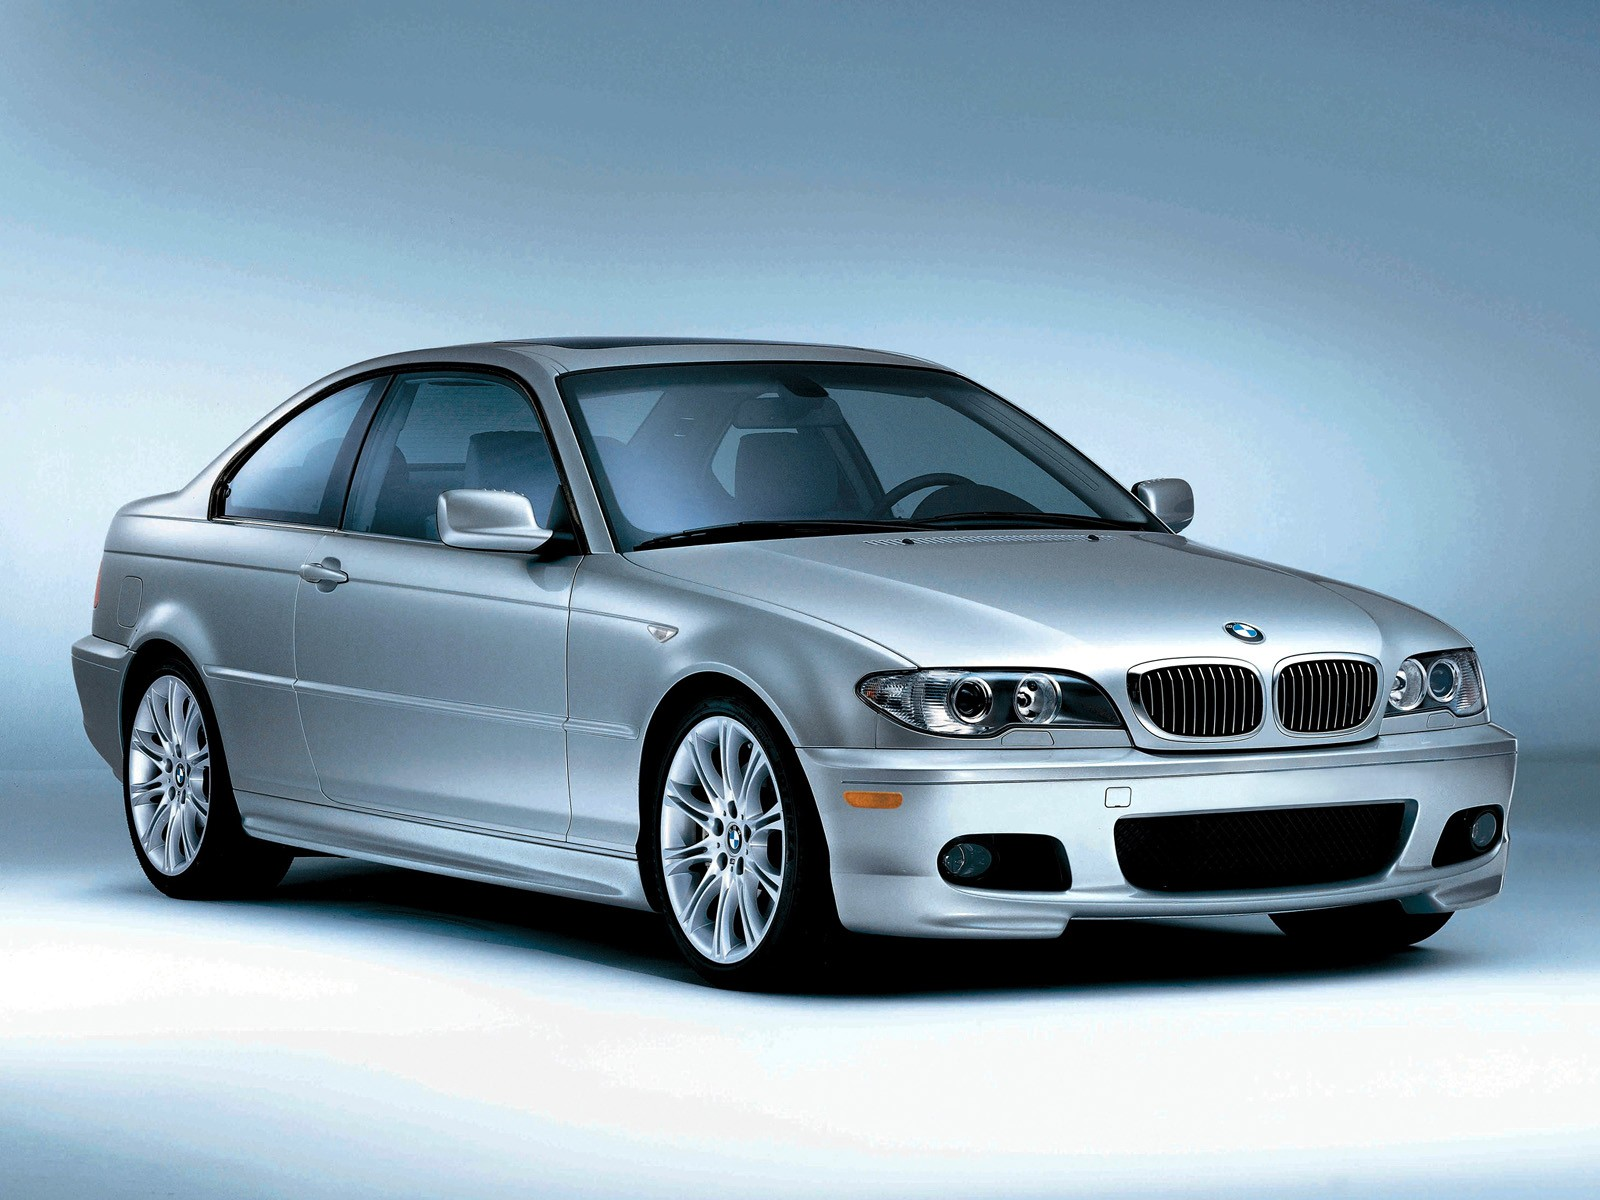 2005 Bmw 330xi Belt Diagram Images Gallery